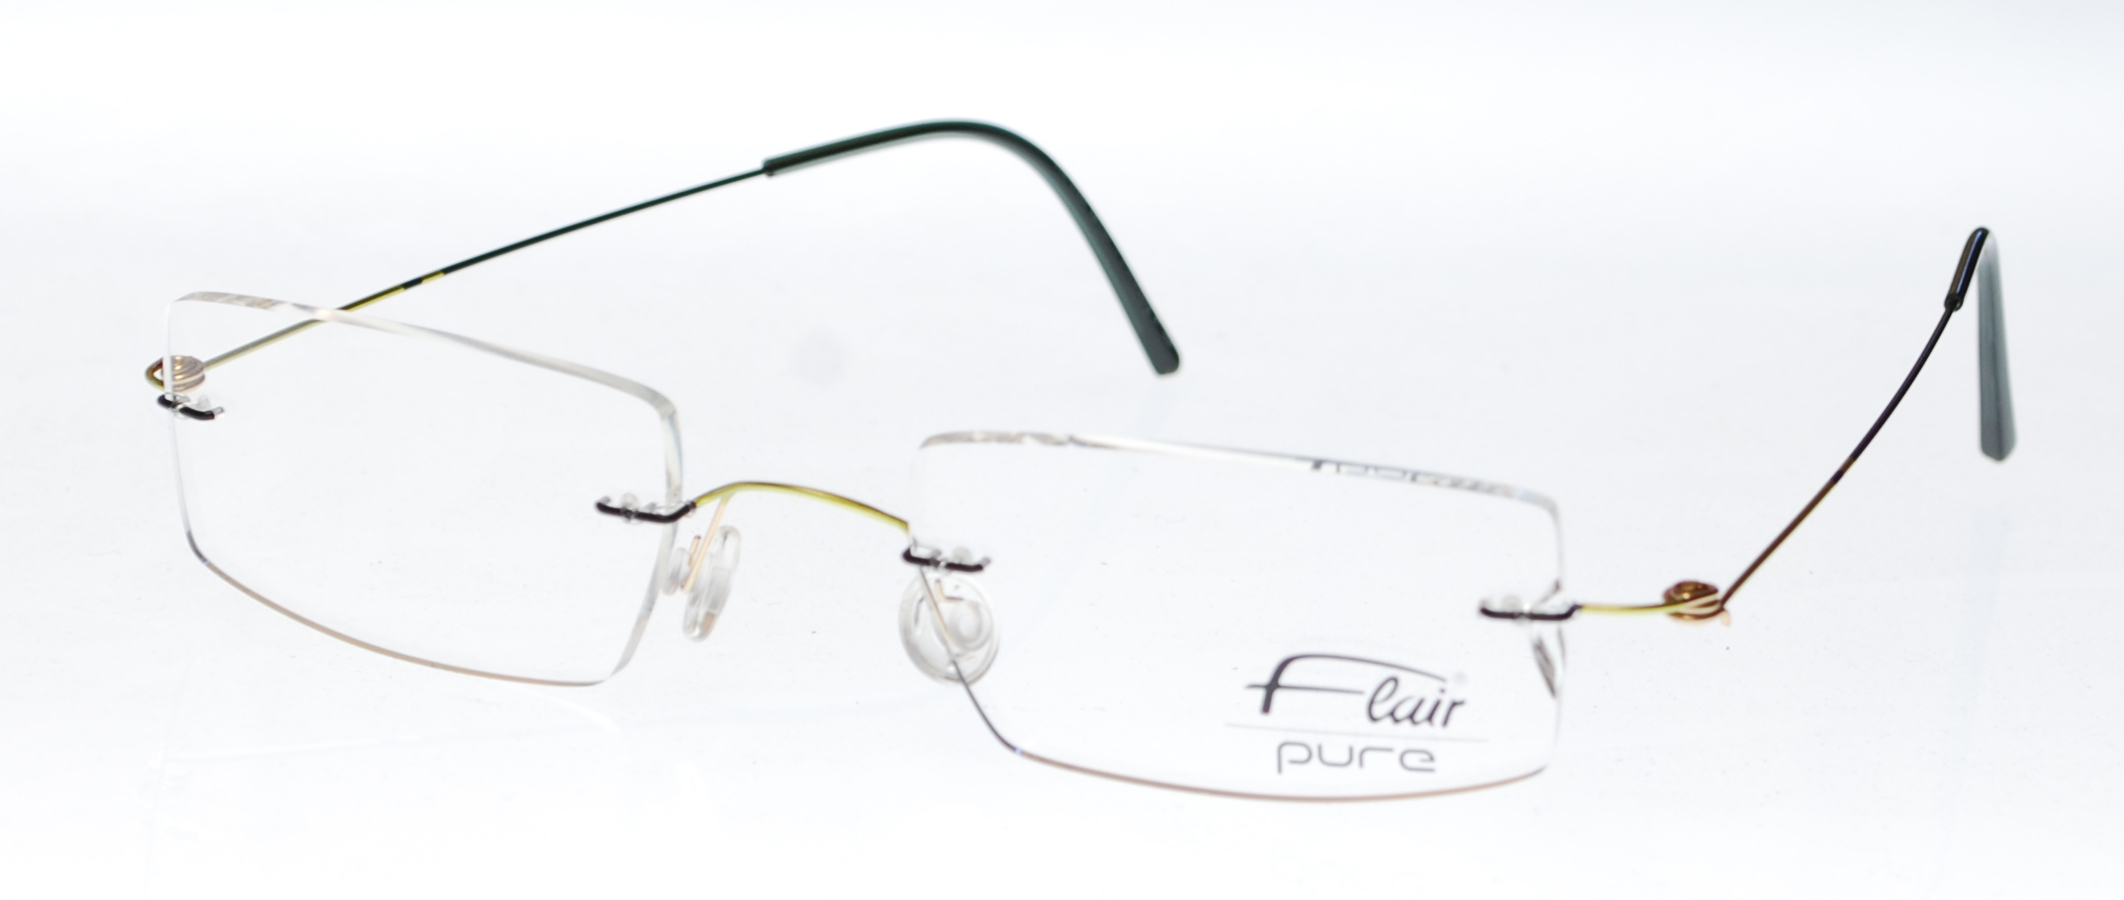 Flair  Flair 589 Eyeglasses